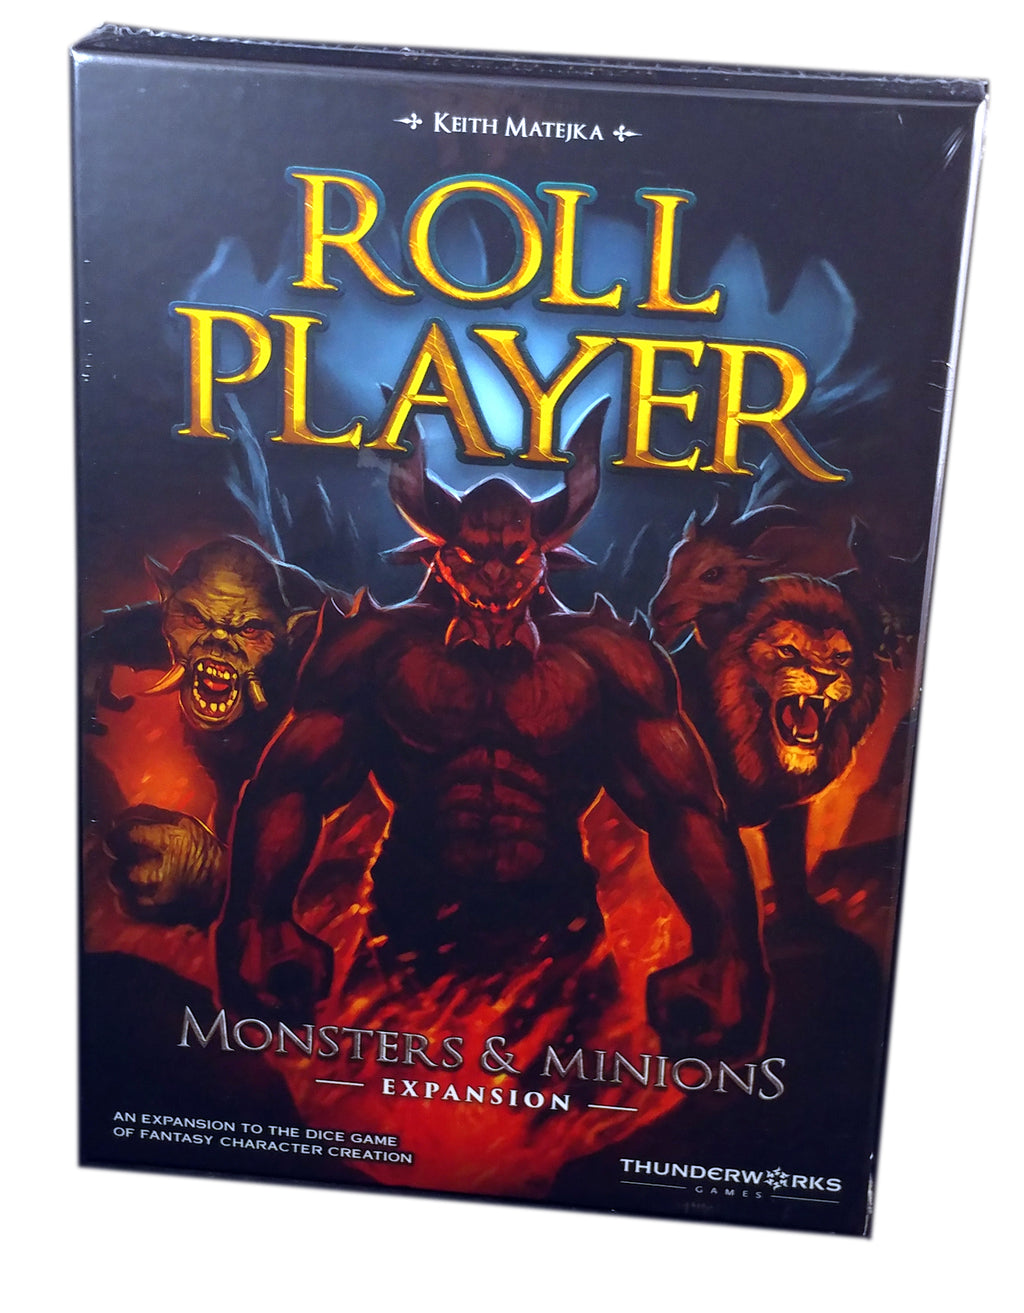 Roll Player, Monsters and Minions Expansion